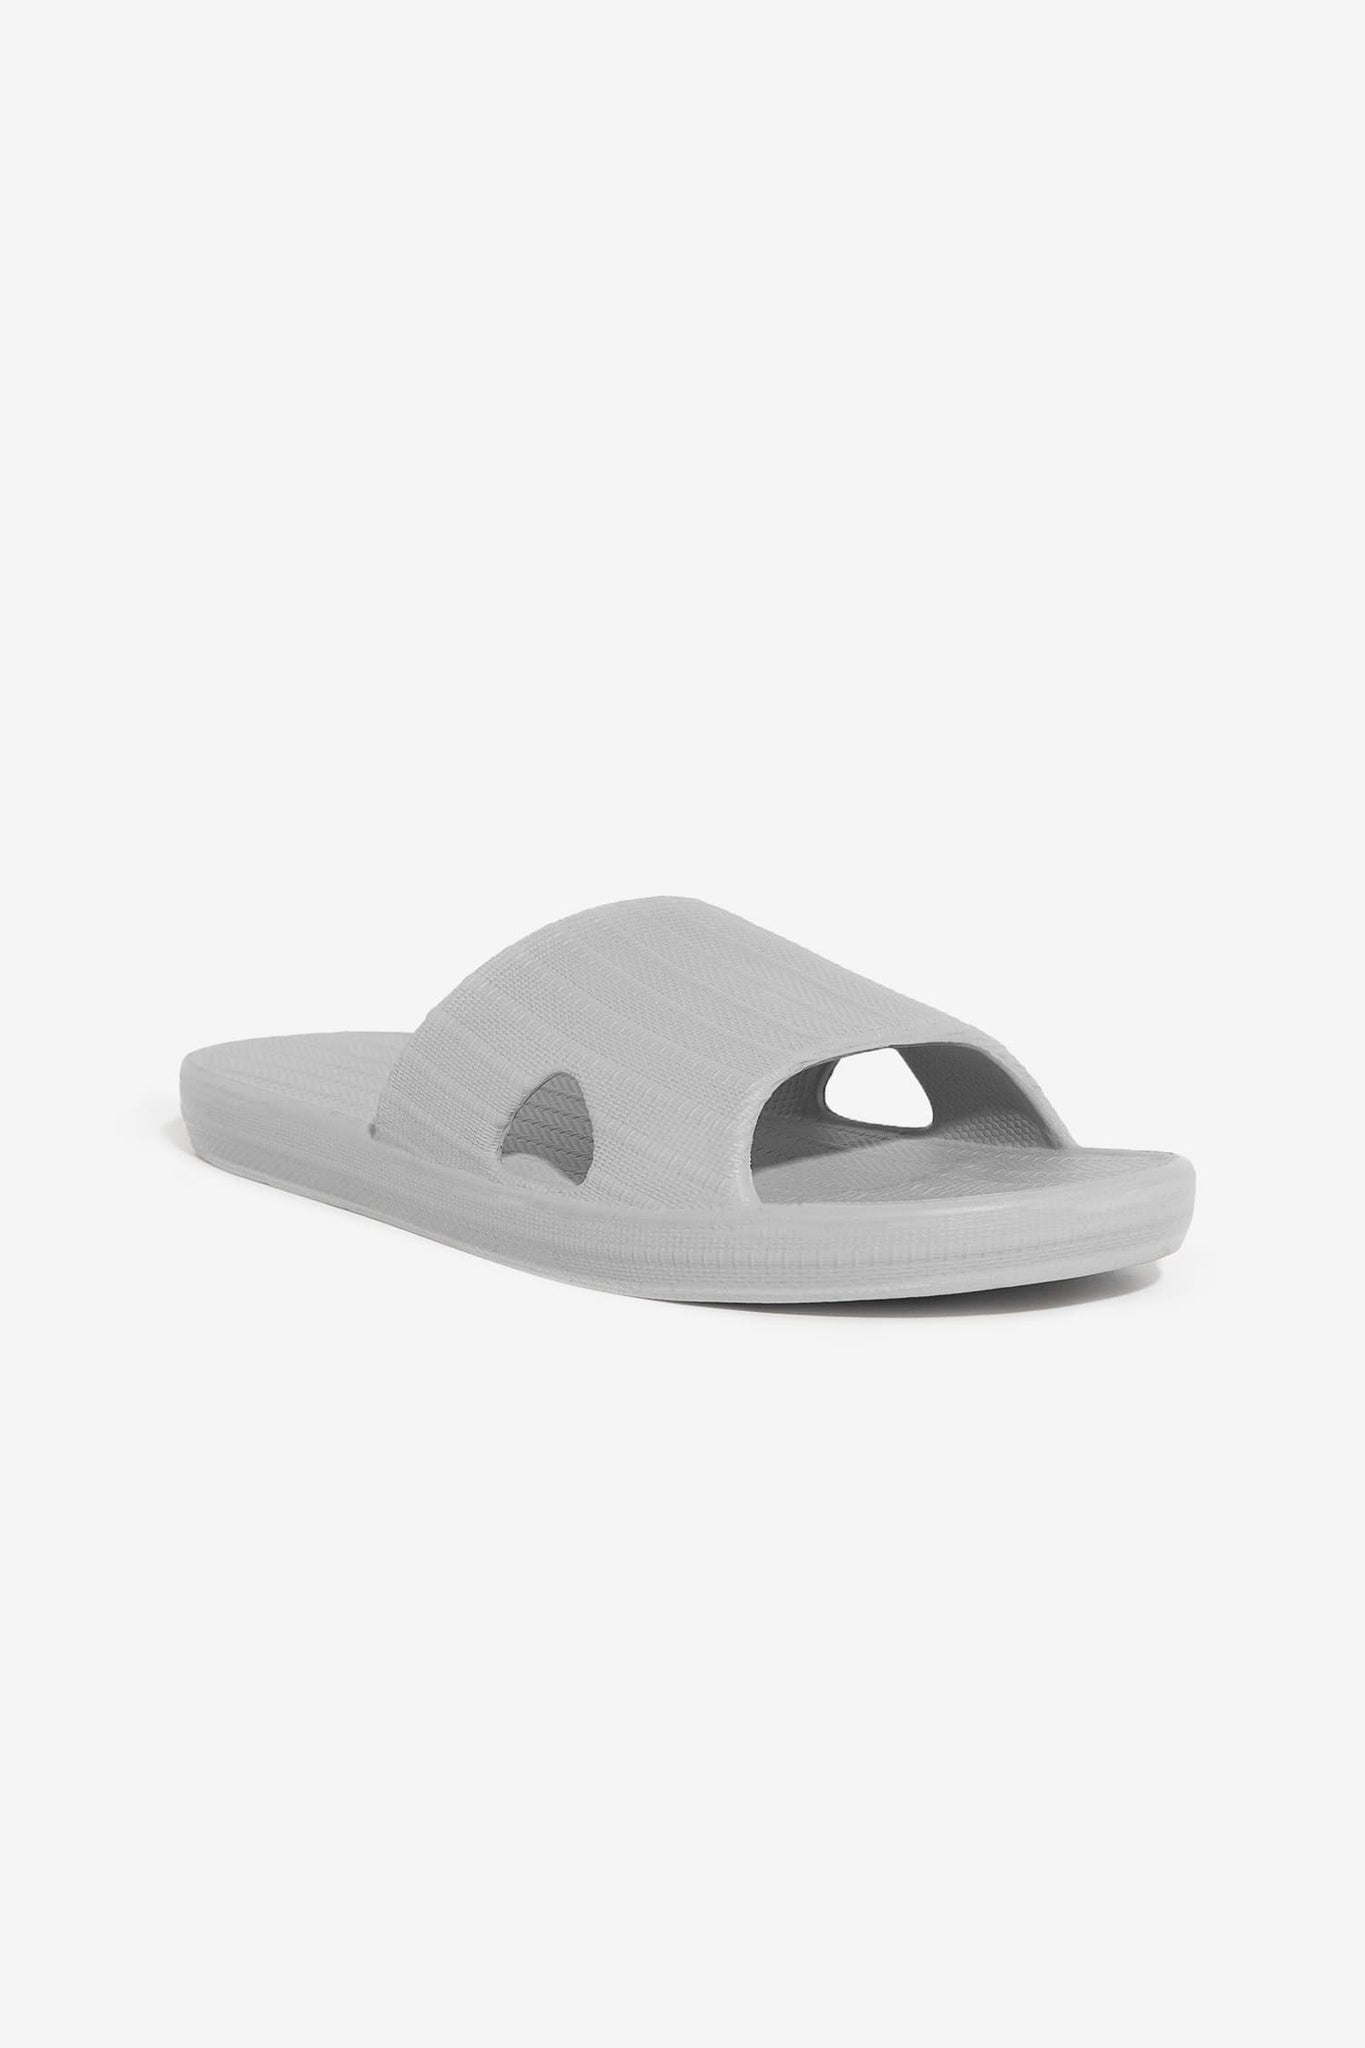 CLOUDSLIDE -  Objet Trouvé/Deadstock Men's Lightweight Cloud Slide